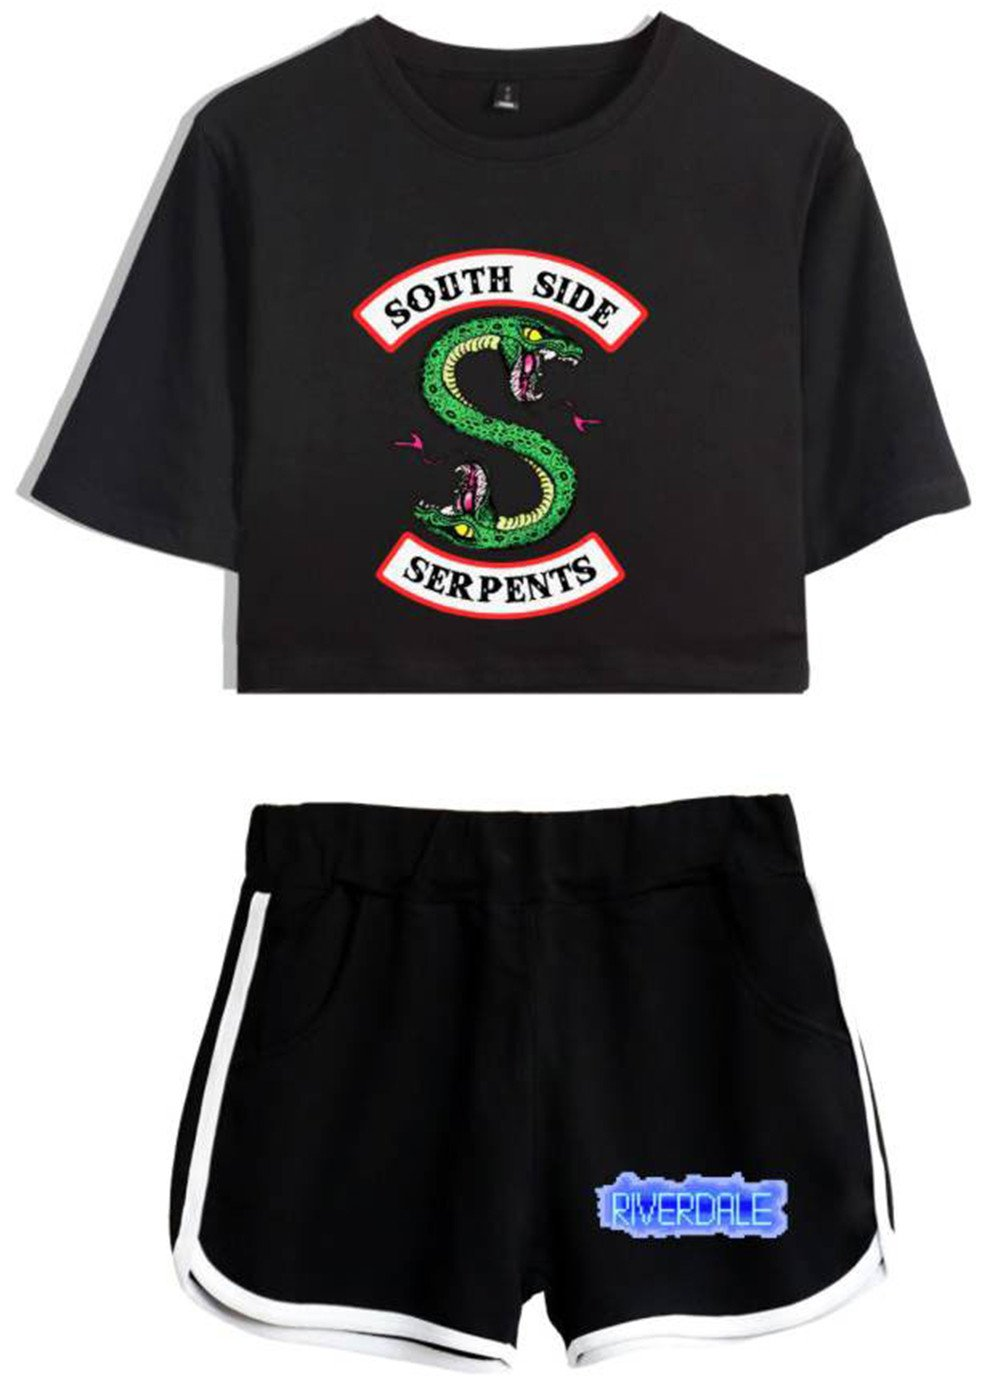 SERAPHY Riverdale Clothing Crop Top T-Shirt and Shorts Suit for Girls/Wowen 5760 Black-blackz XL